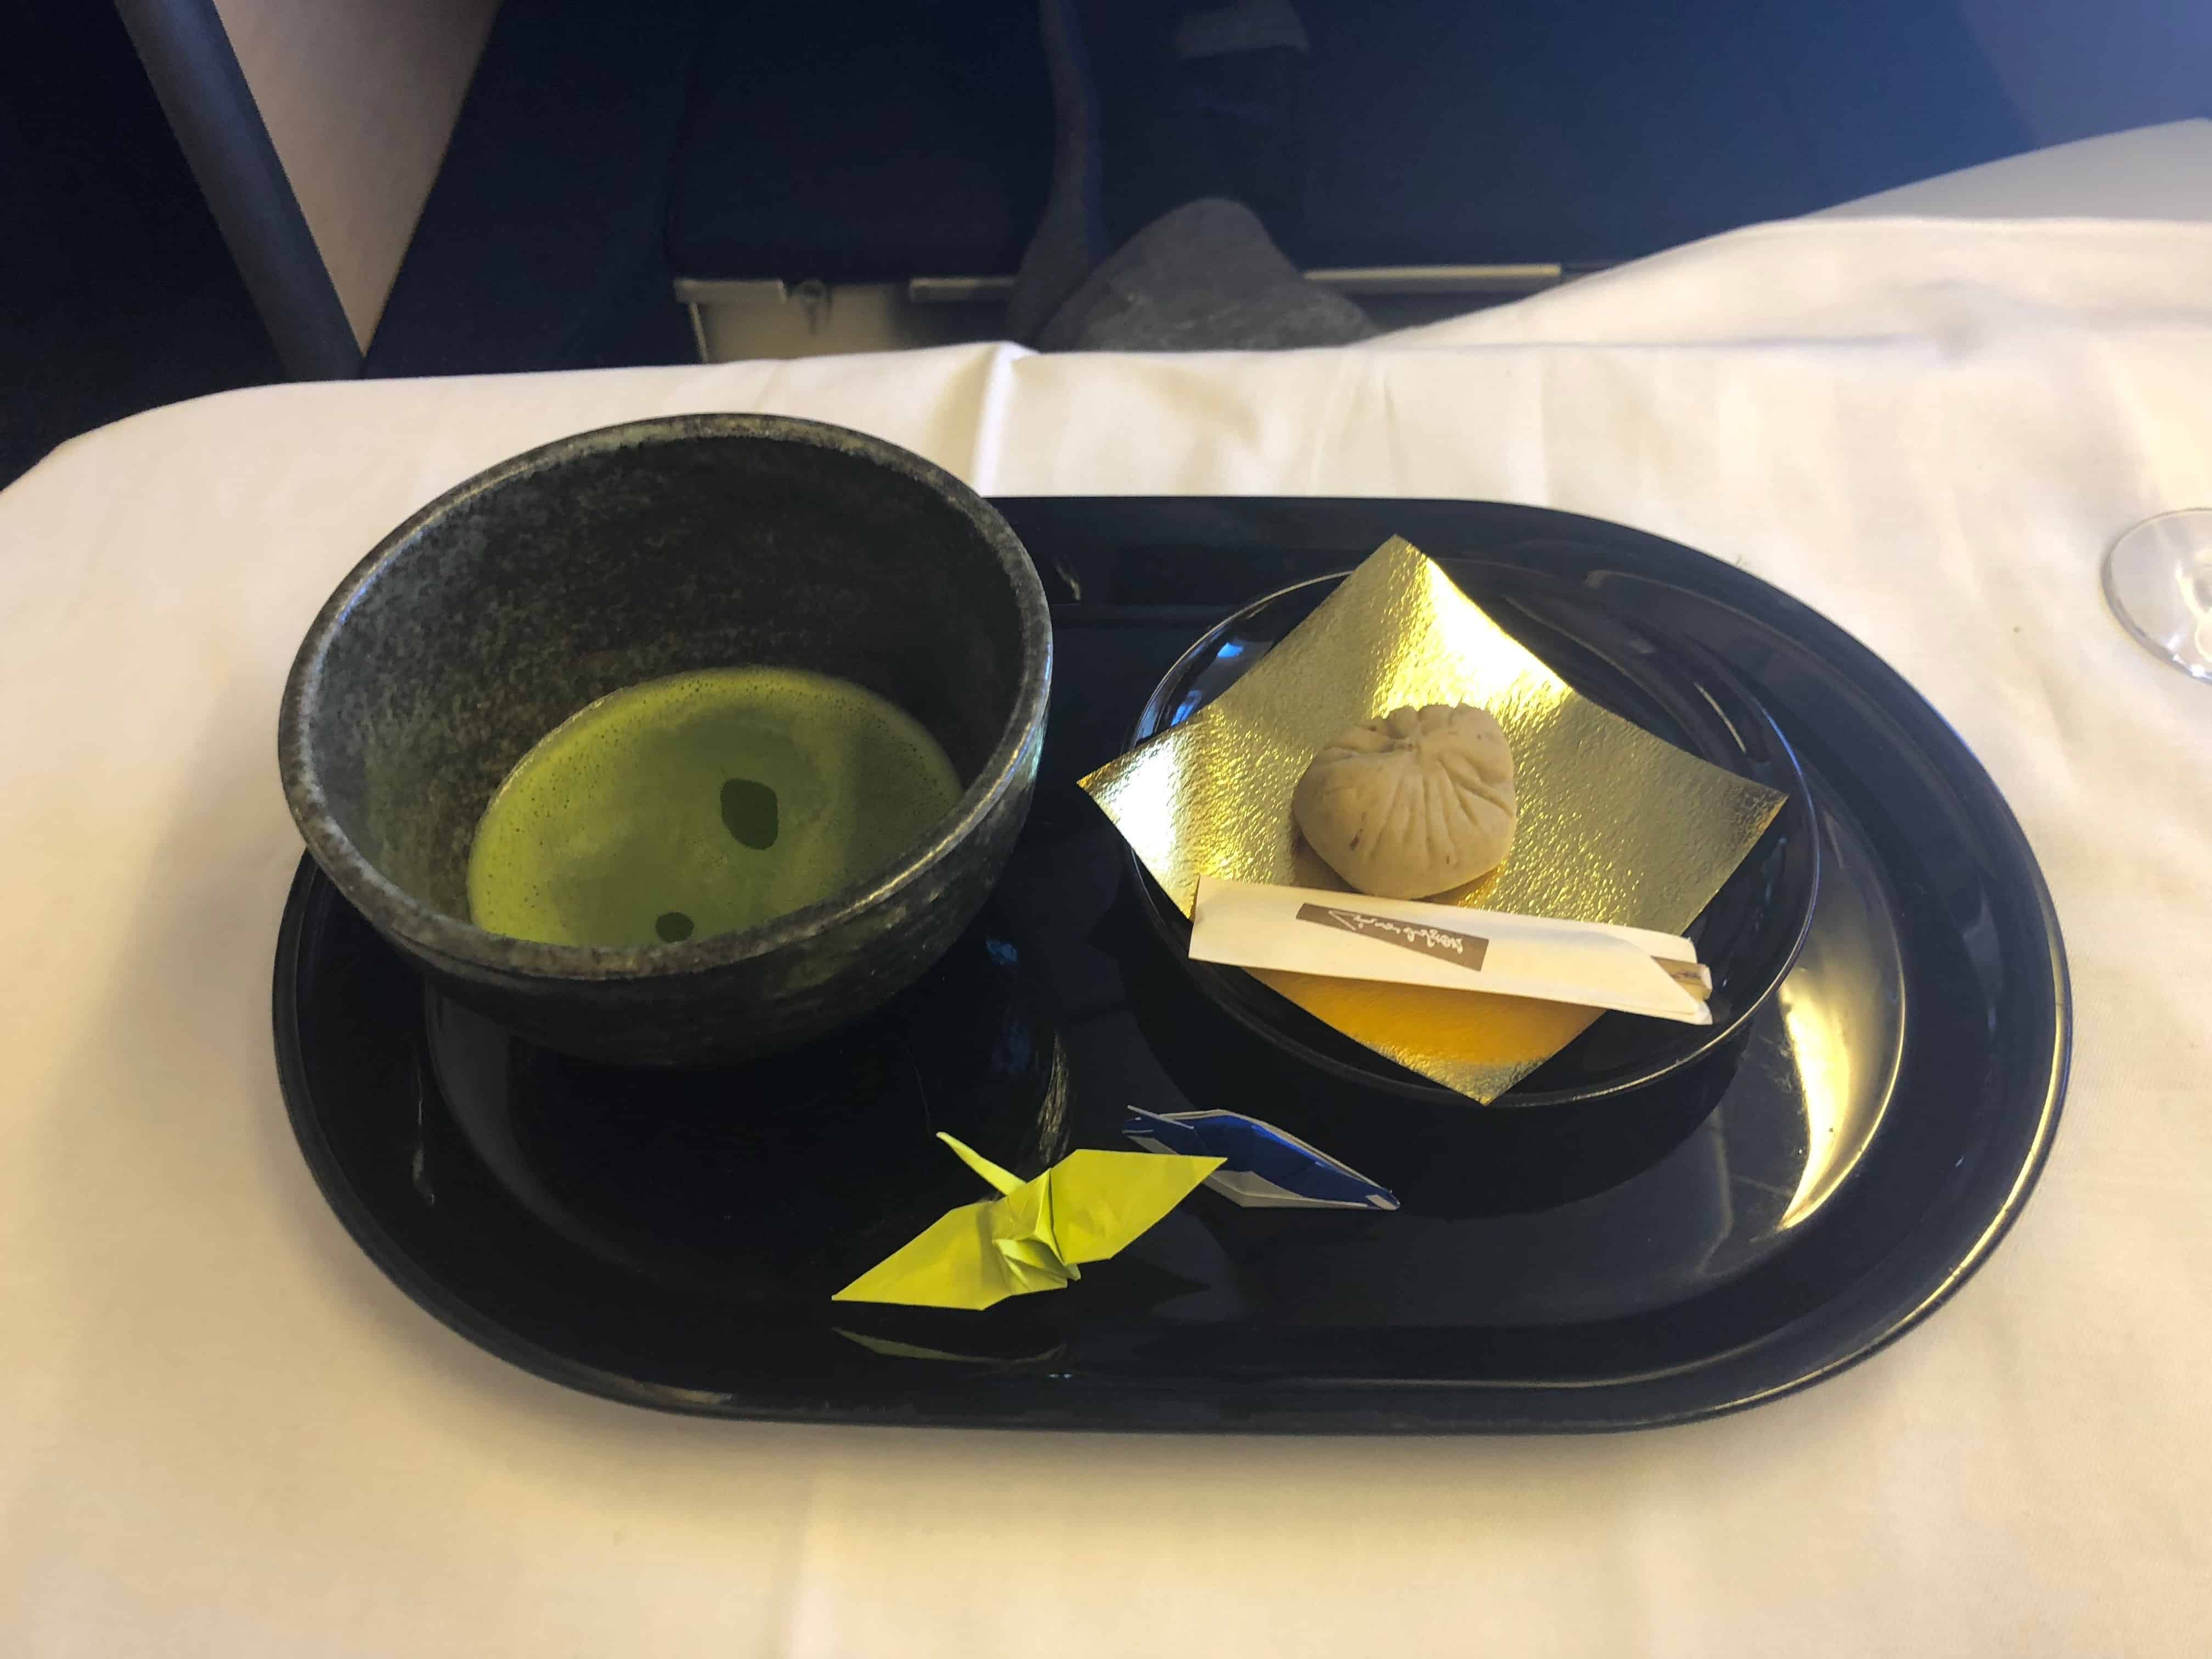 ANA First Class - Anytime Snacks